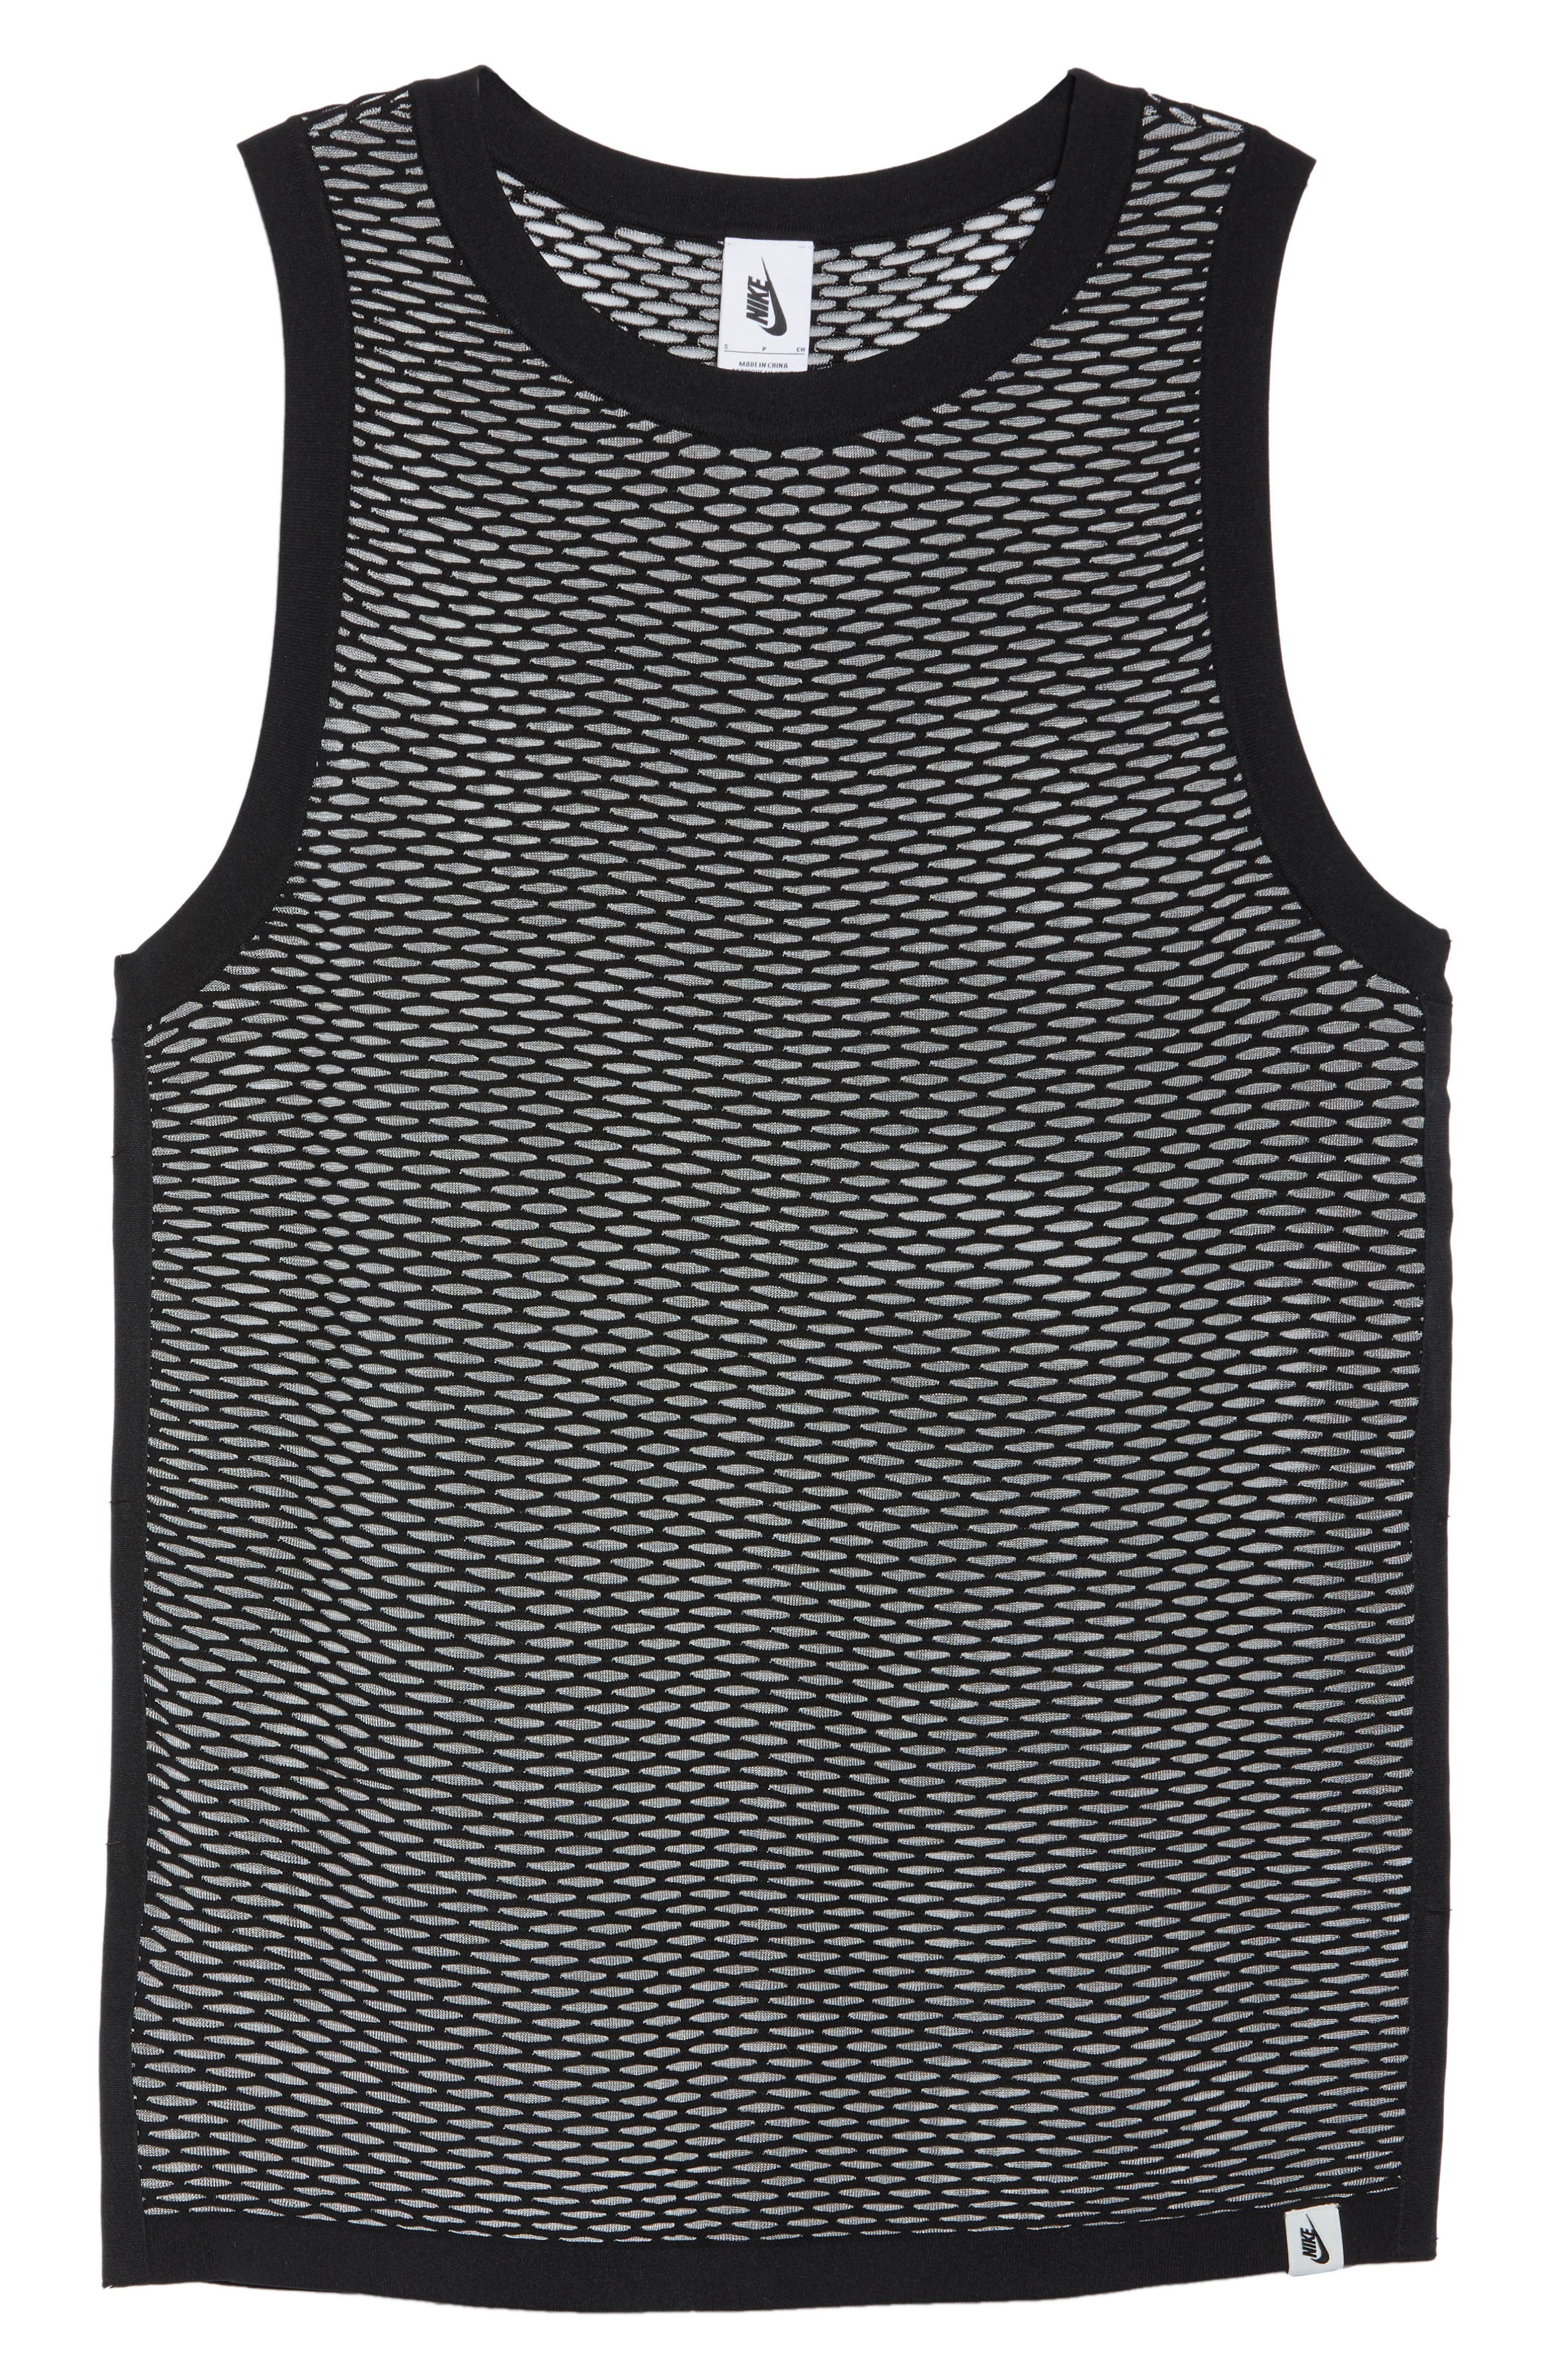 ab Collection Women's Knit Basketball Tank,                             Alternate thumbnail 7, color,                             Black/ Black